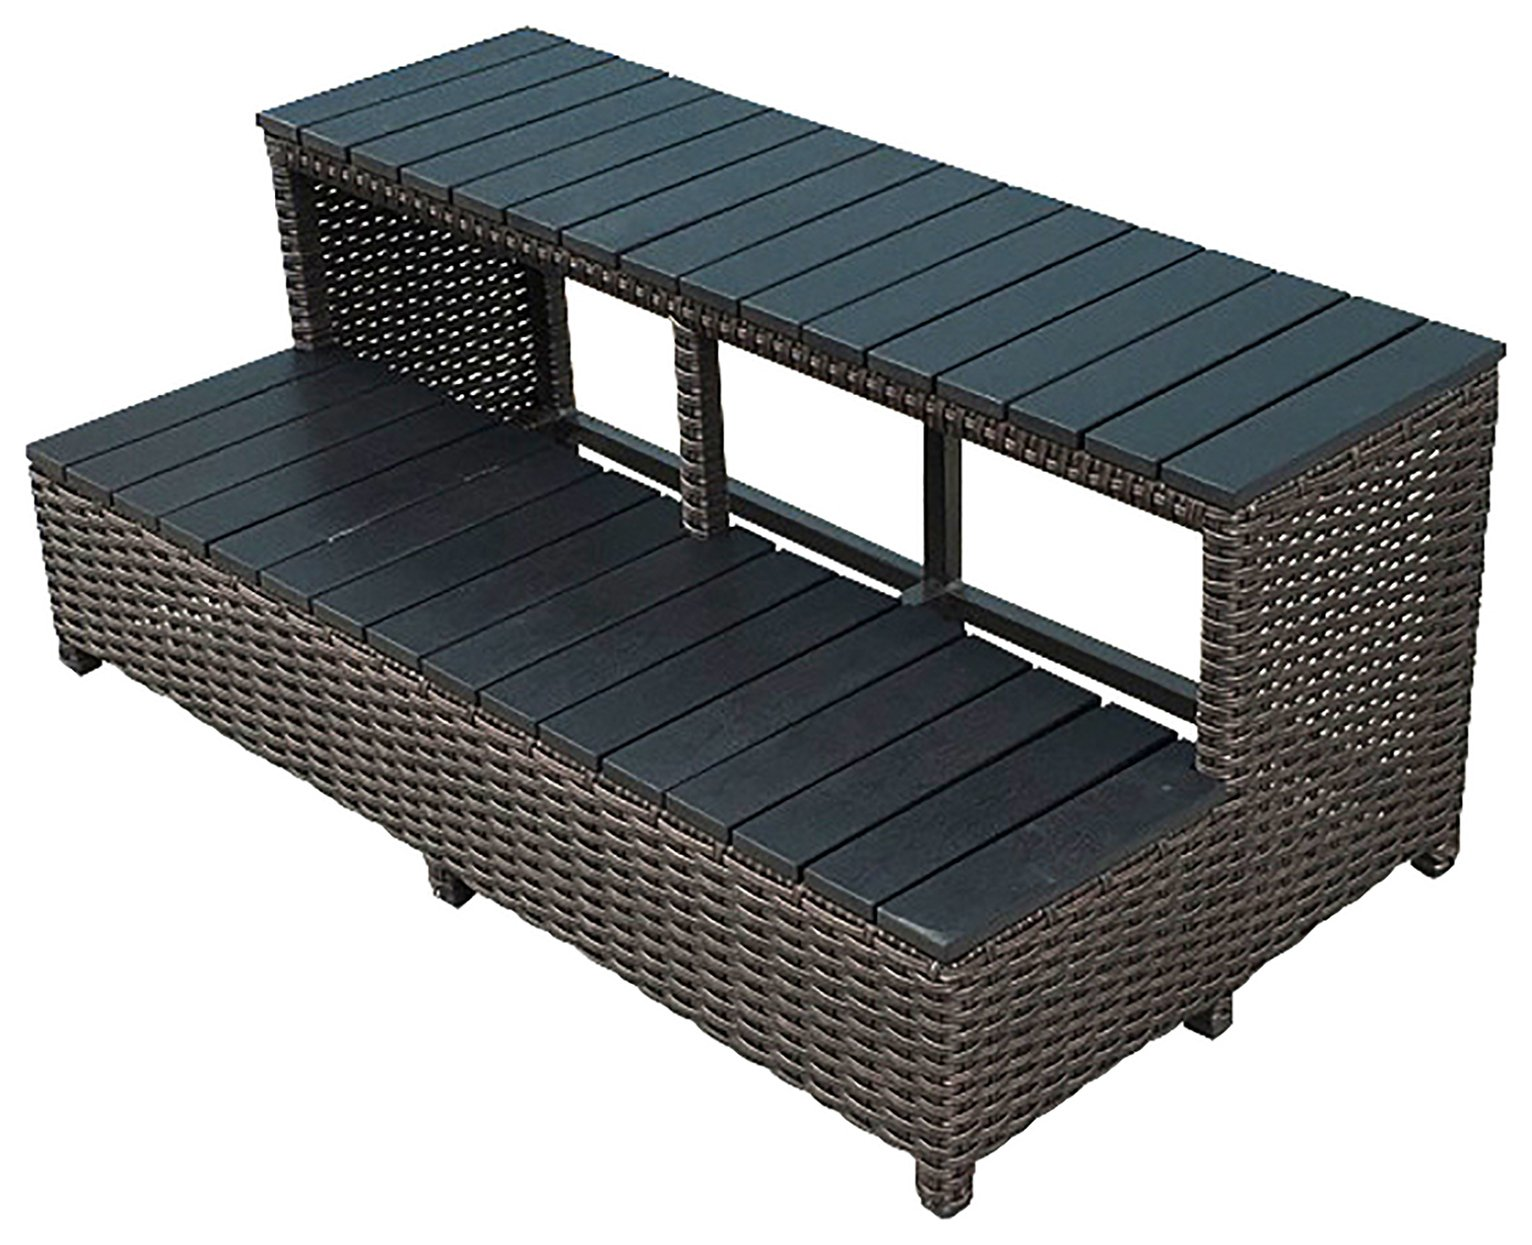 Canadian Spa Wicker Spa Steps 86 inch at Argos review